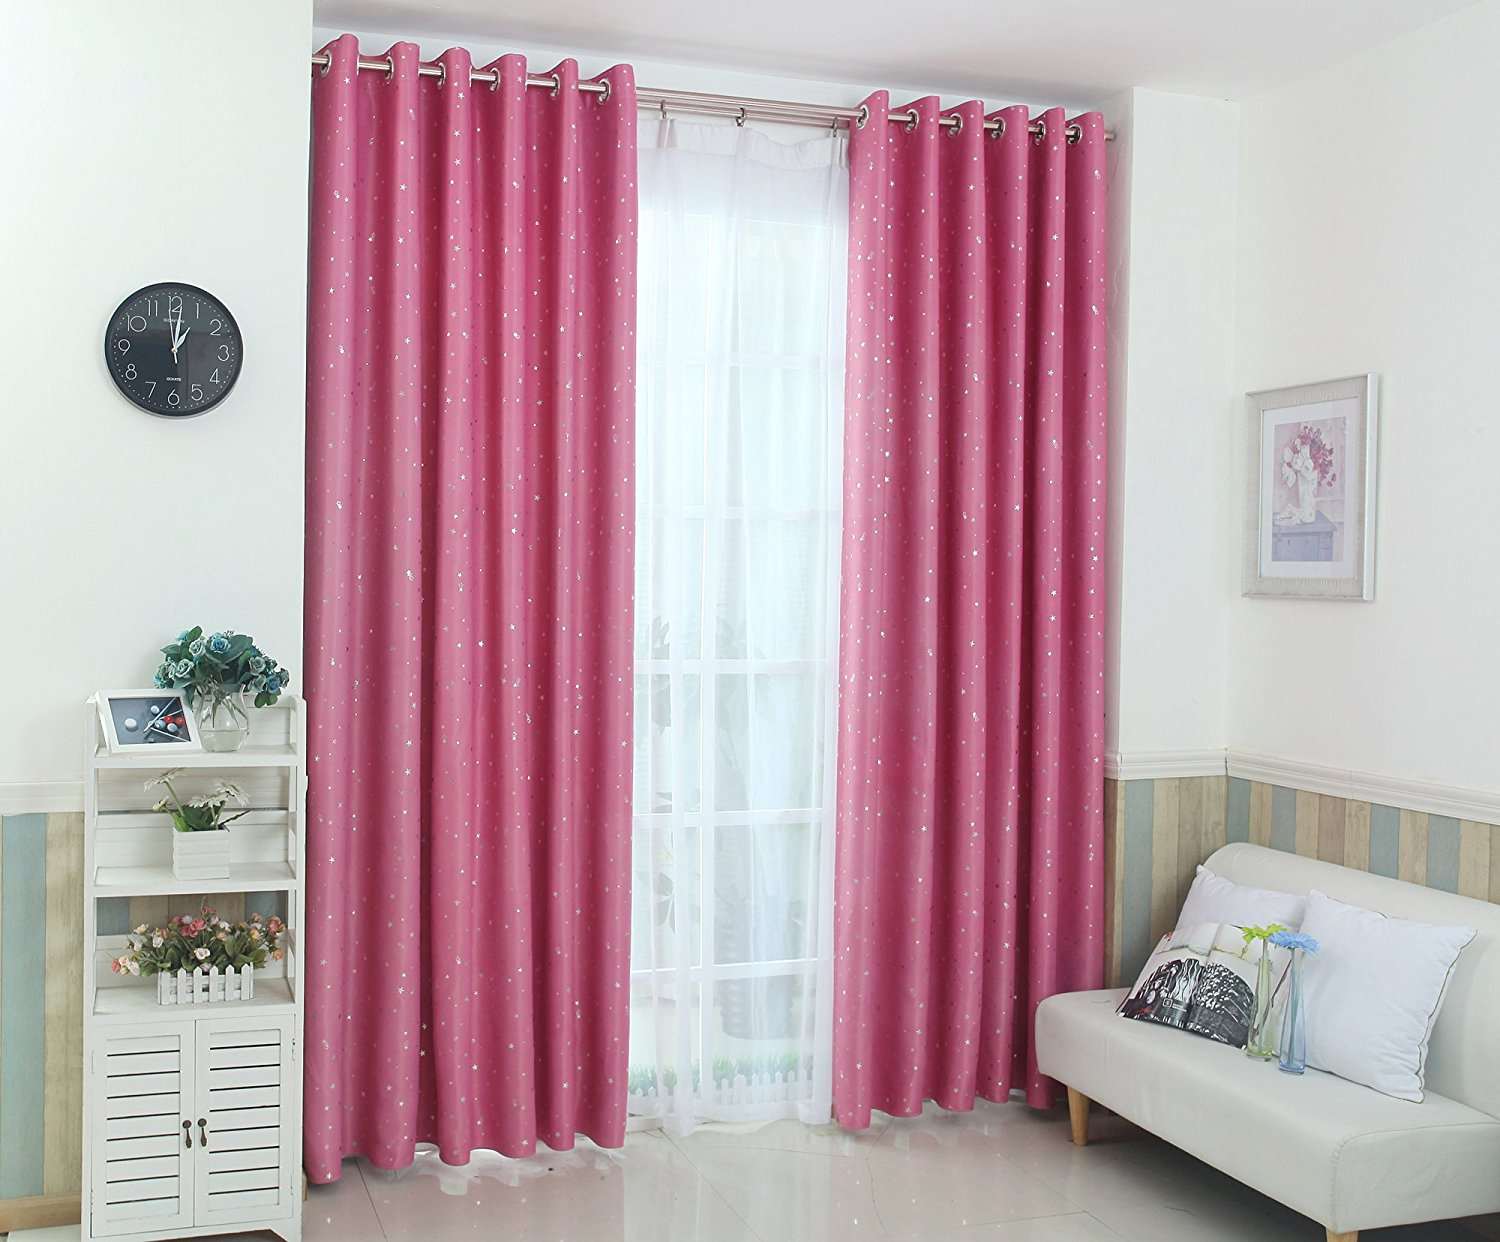 105 Inch Curtains Cheap Pink Girls Curtains Find Pink Girls Curtains Deals On Line